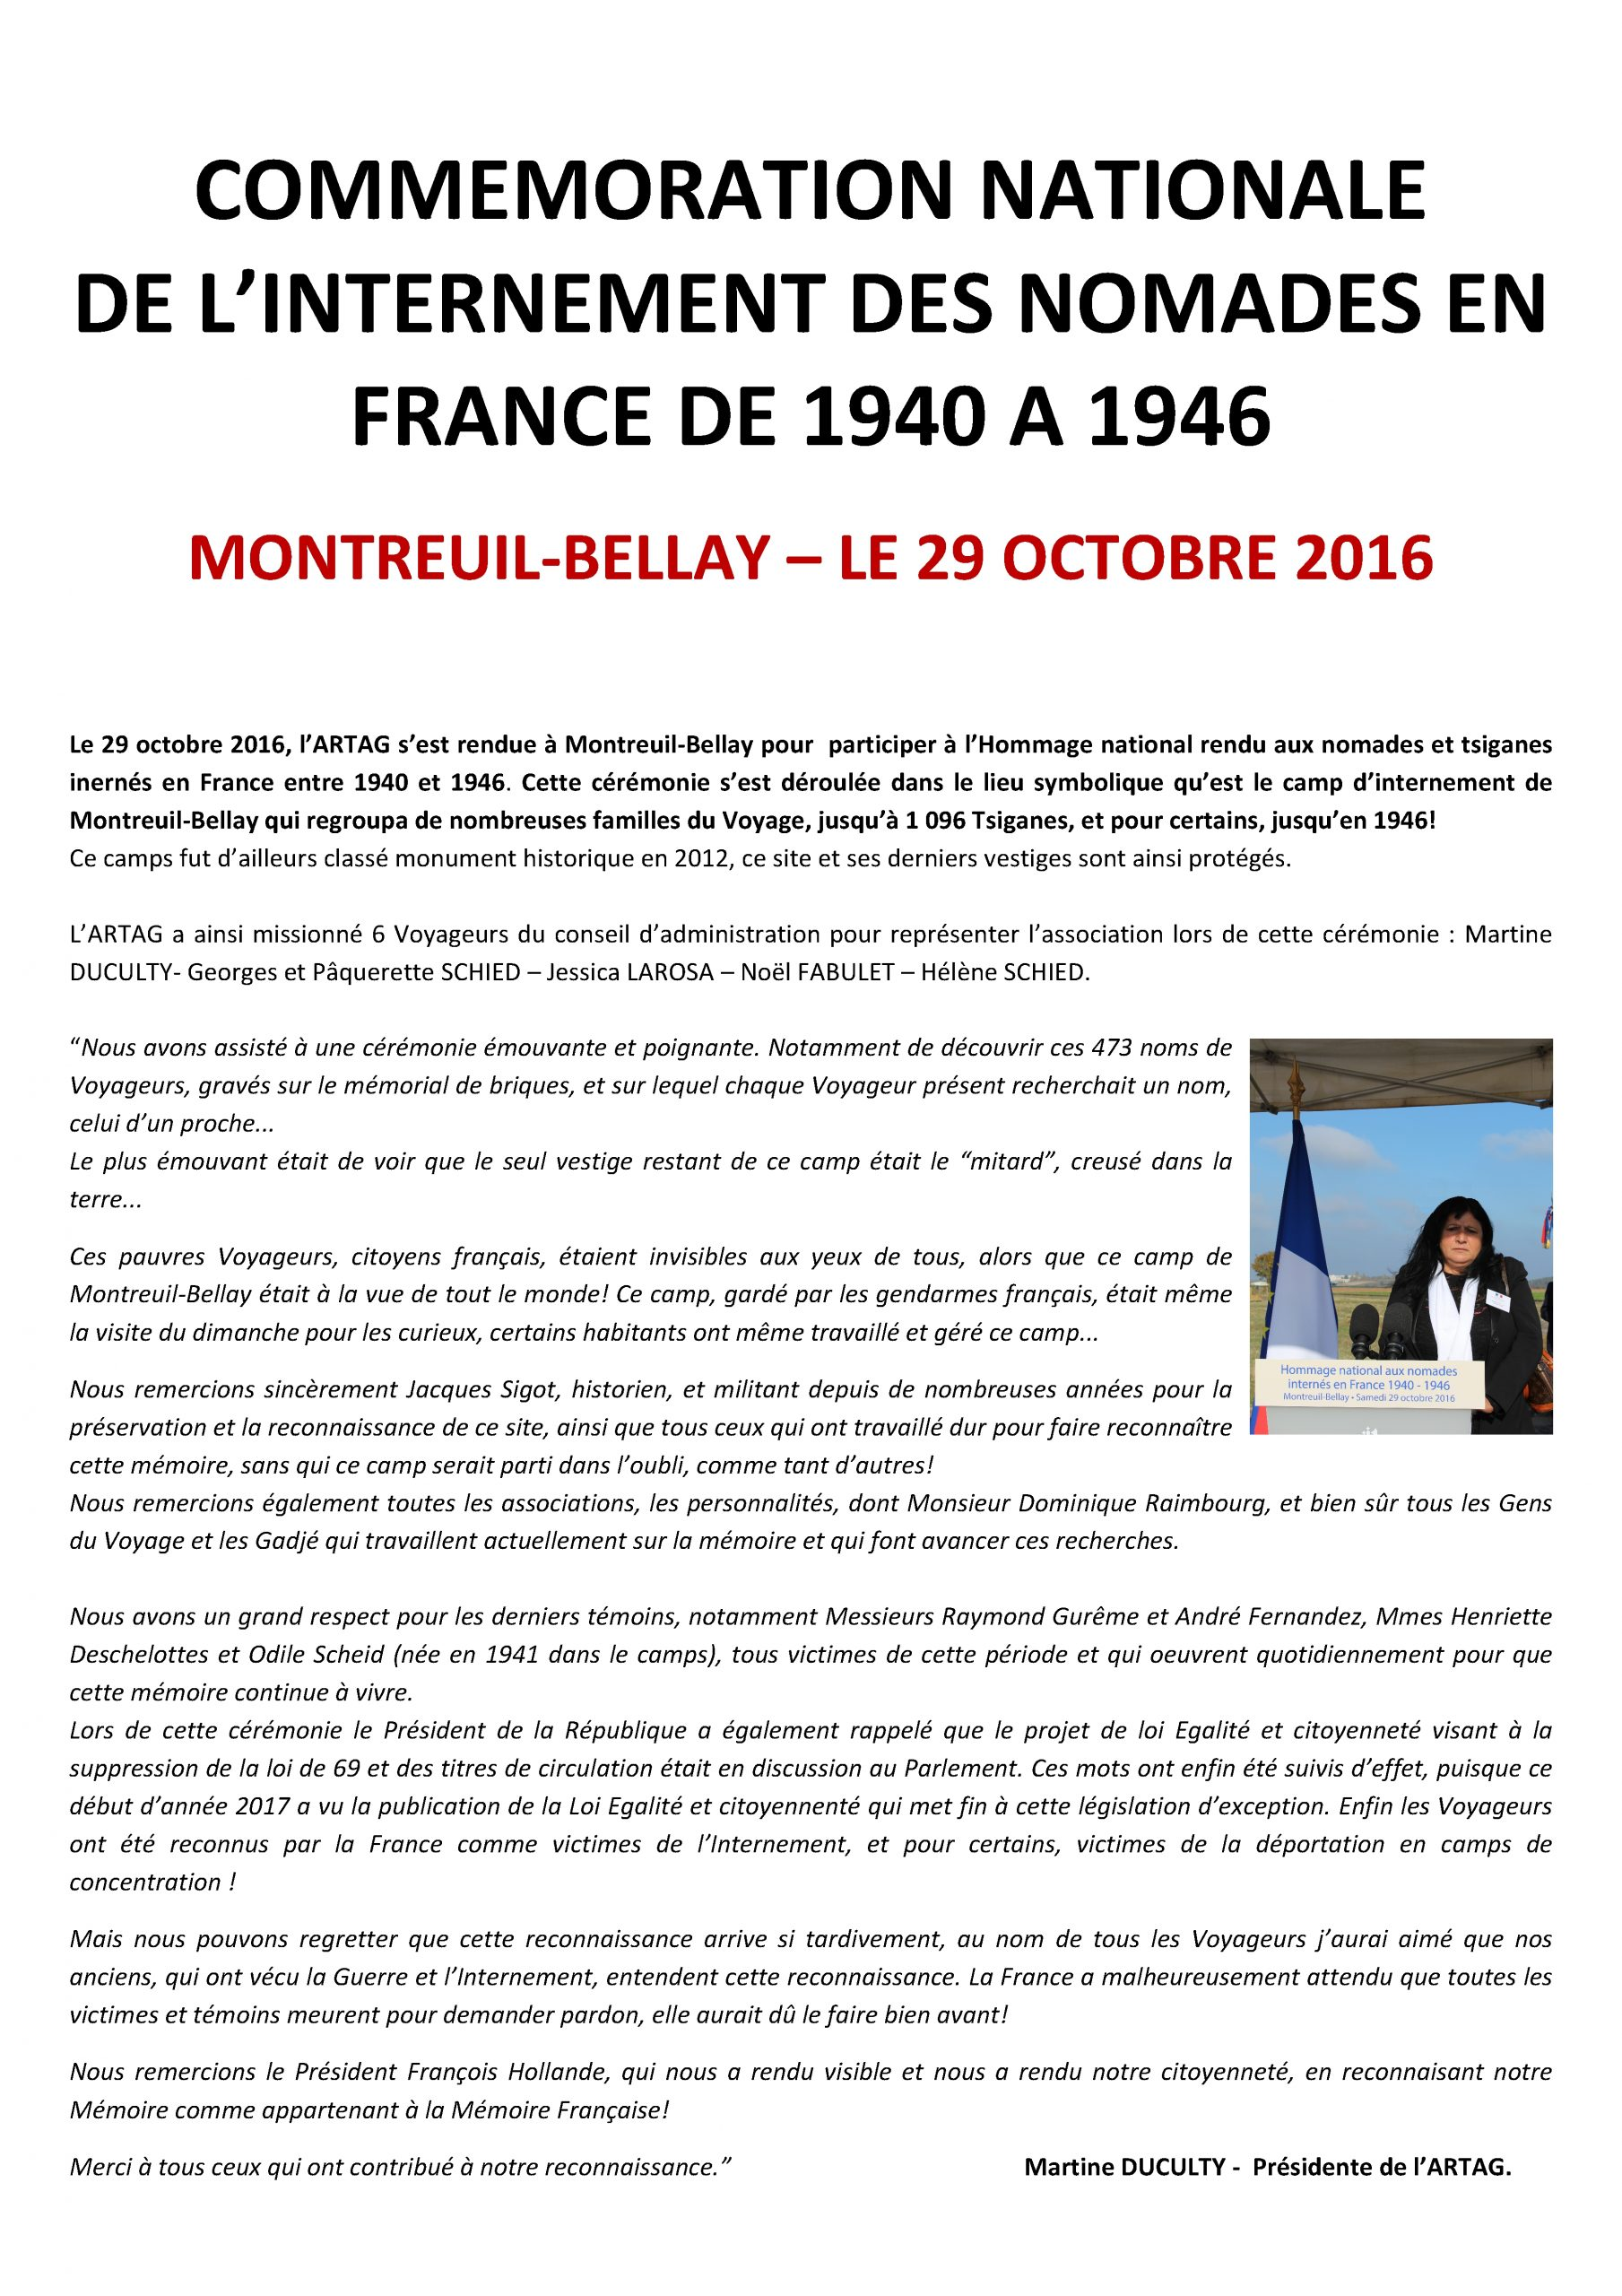 Commemoration Montreuil-Bellay Oct 2016